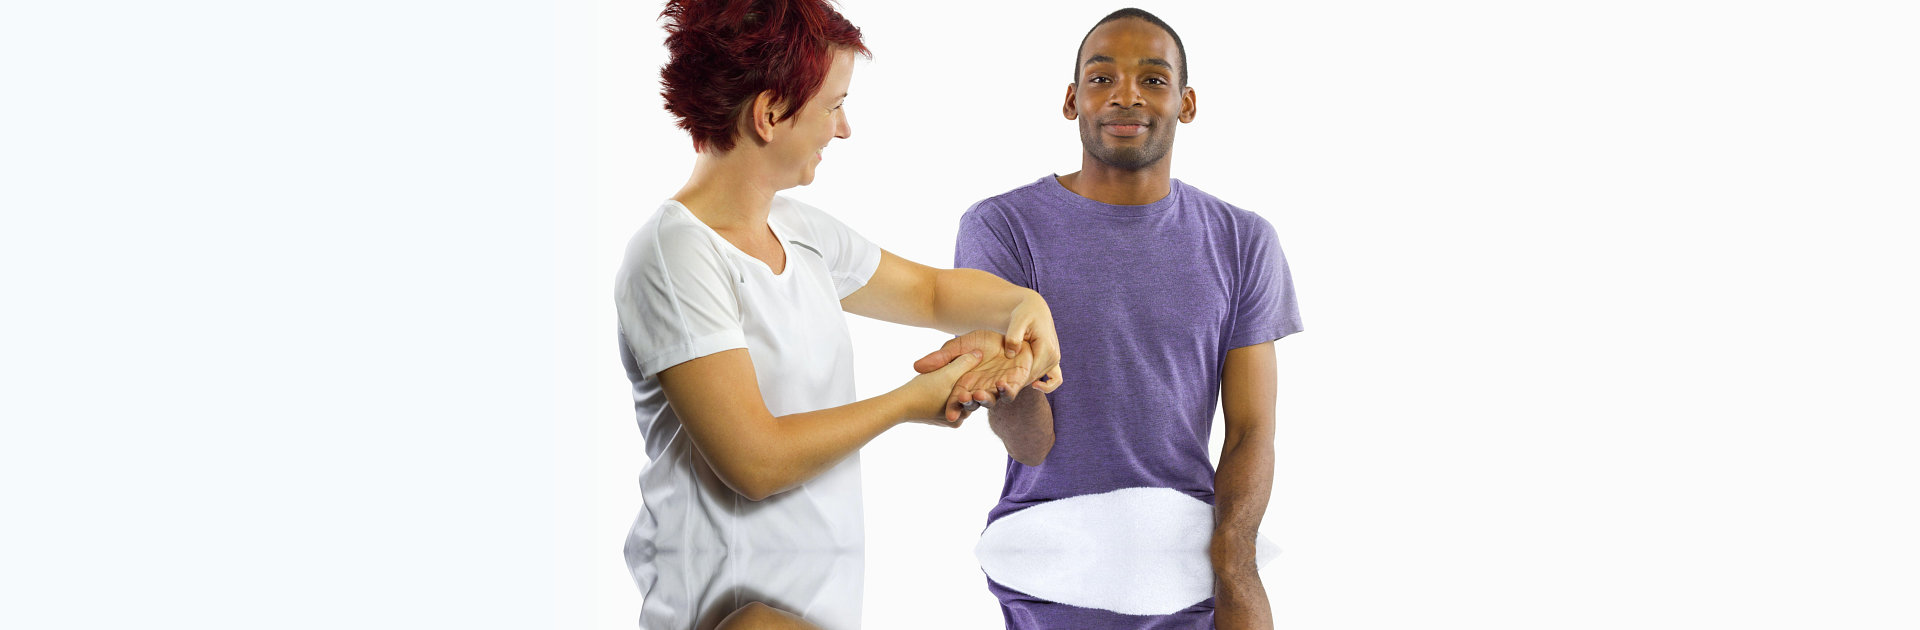 Young female masseuse applying pressure on male client's hand